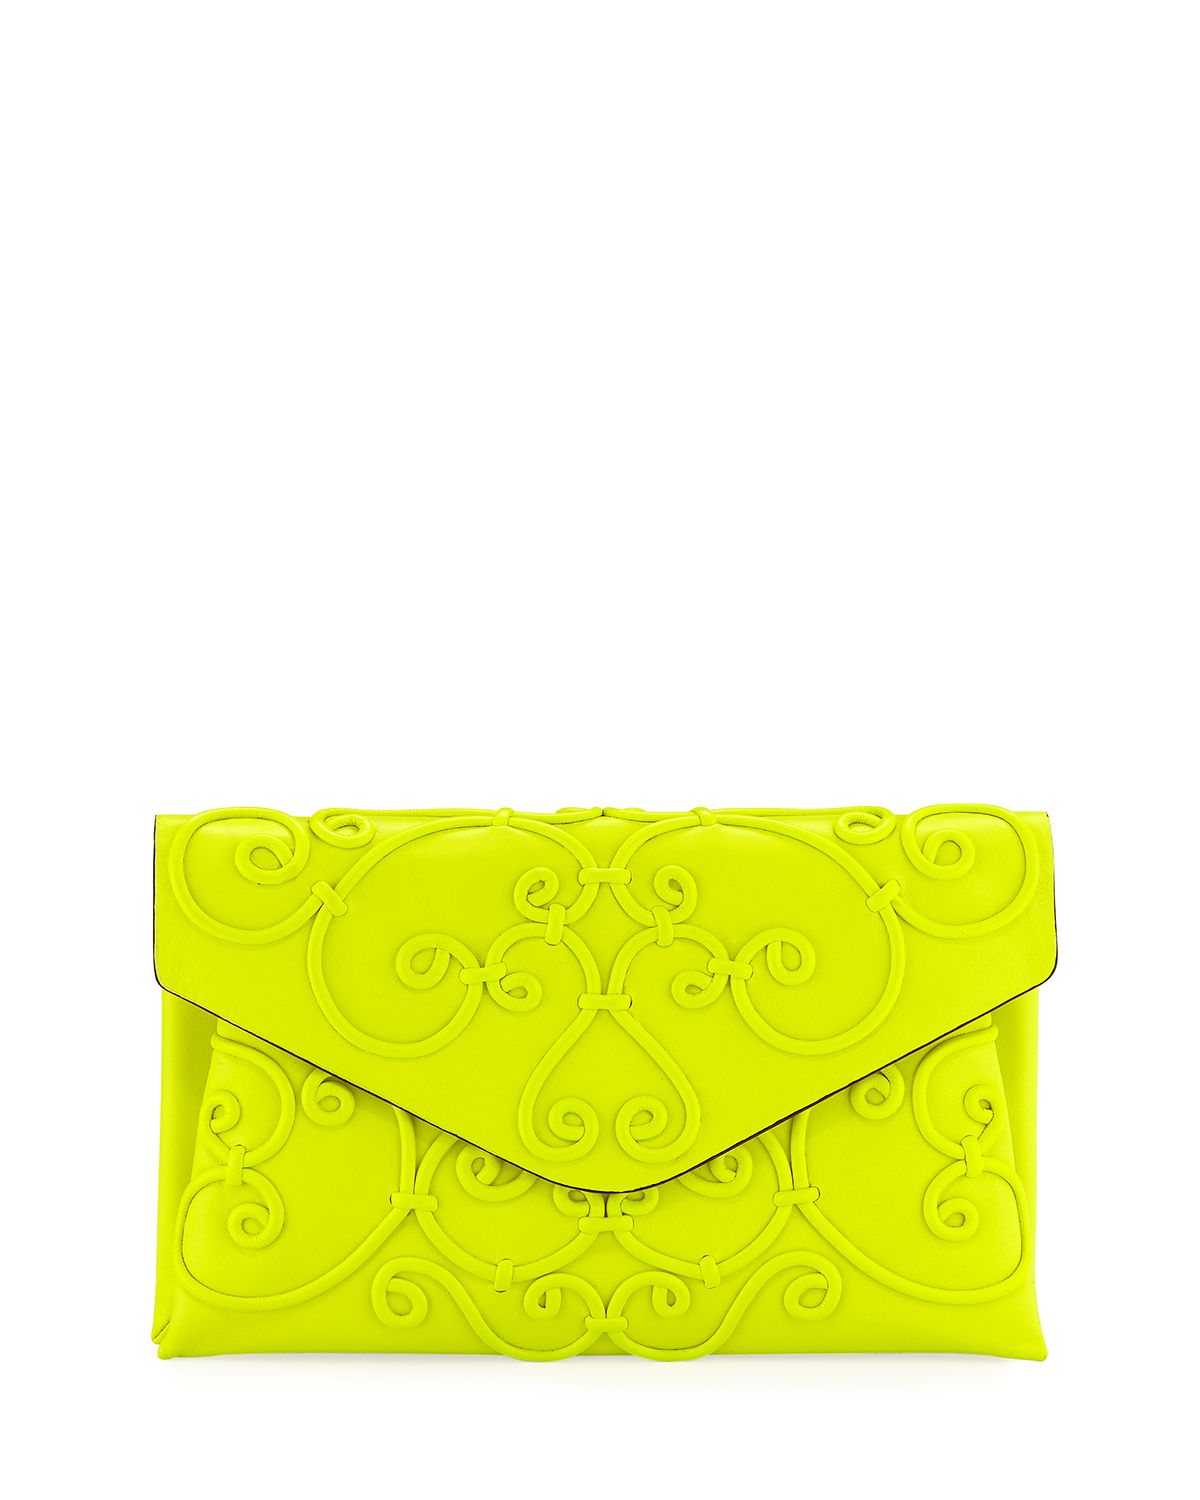 Ready To Wear Report Latest Handbag Arrivals At Neiman Marcus Last Tendencies Back Pack Arcus Navy Intricate Scroll Envelope Clutch Bag Call 159500